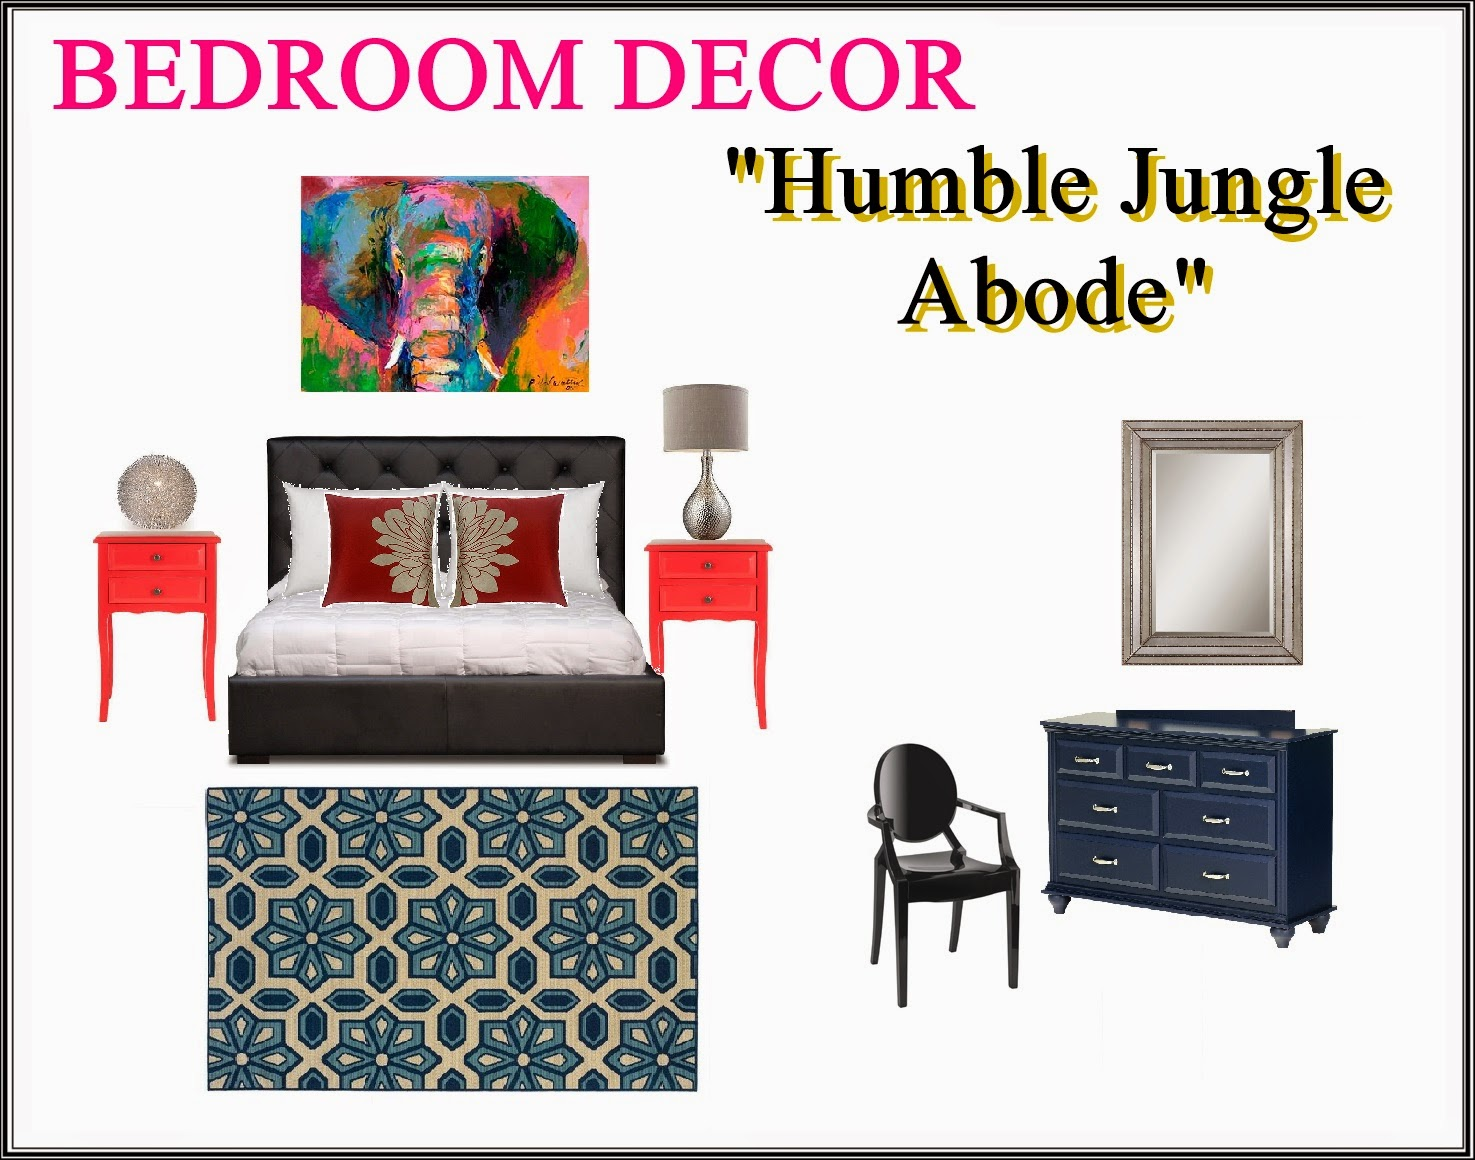 how to decorate a man's bedroom